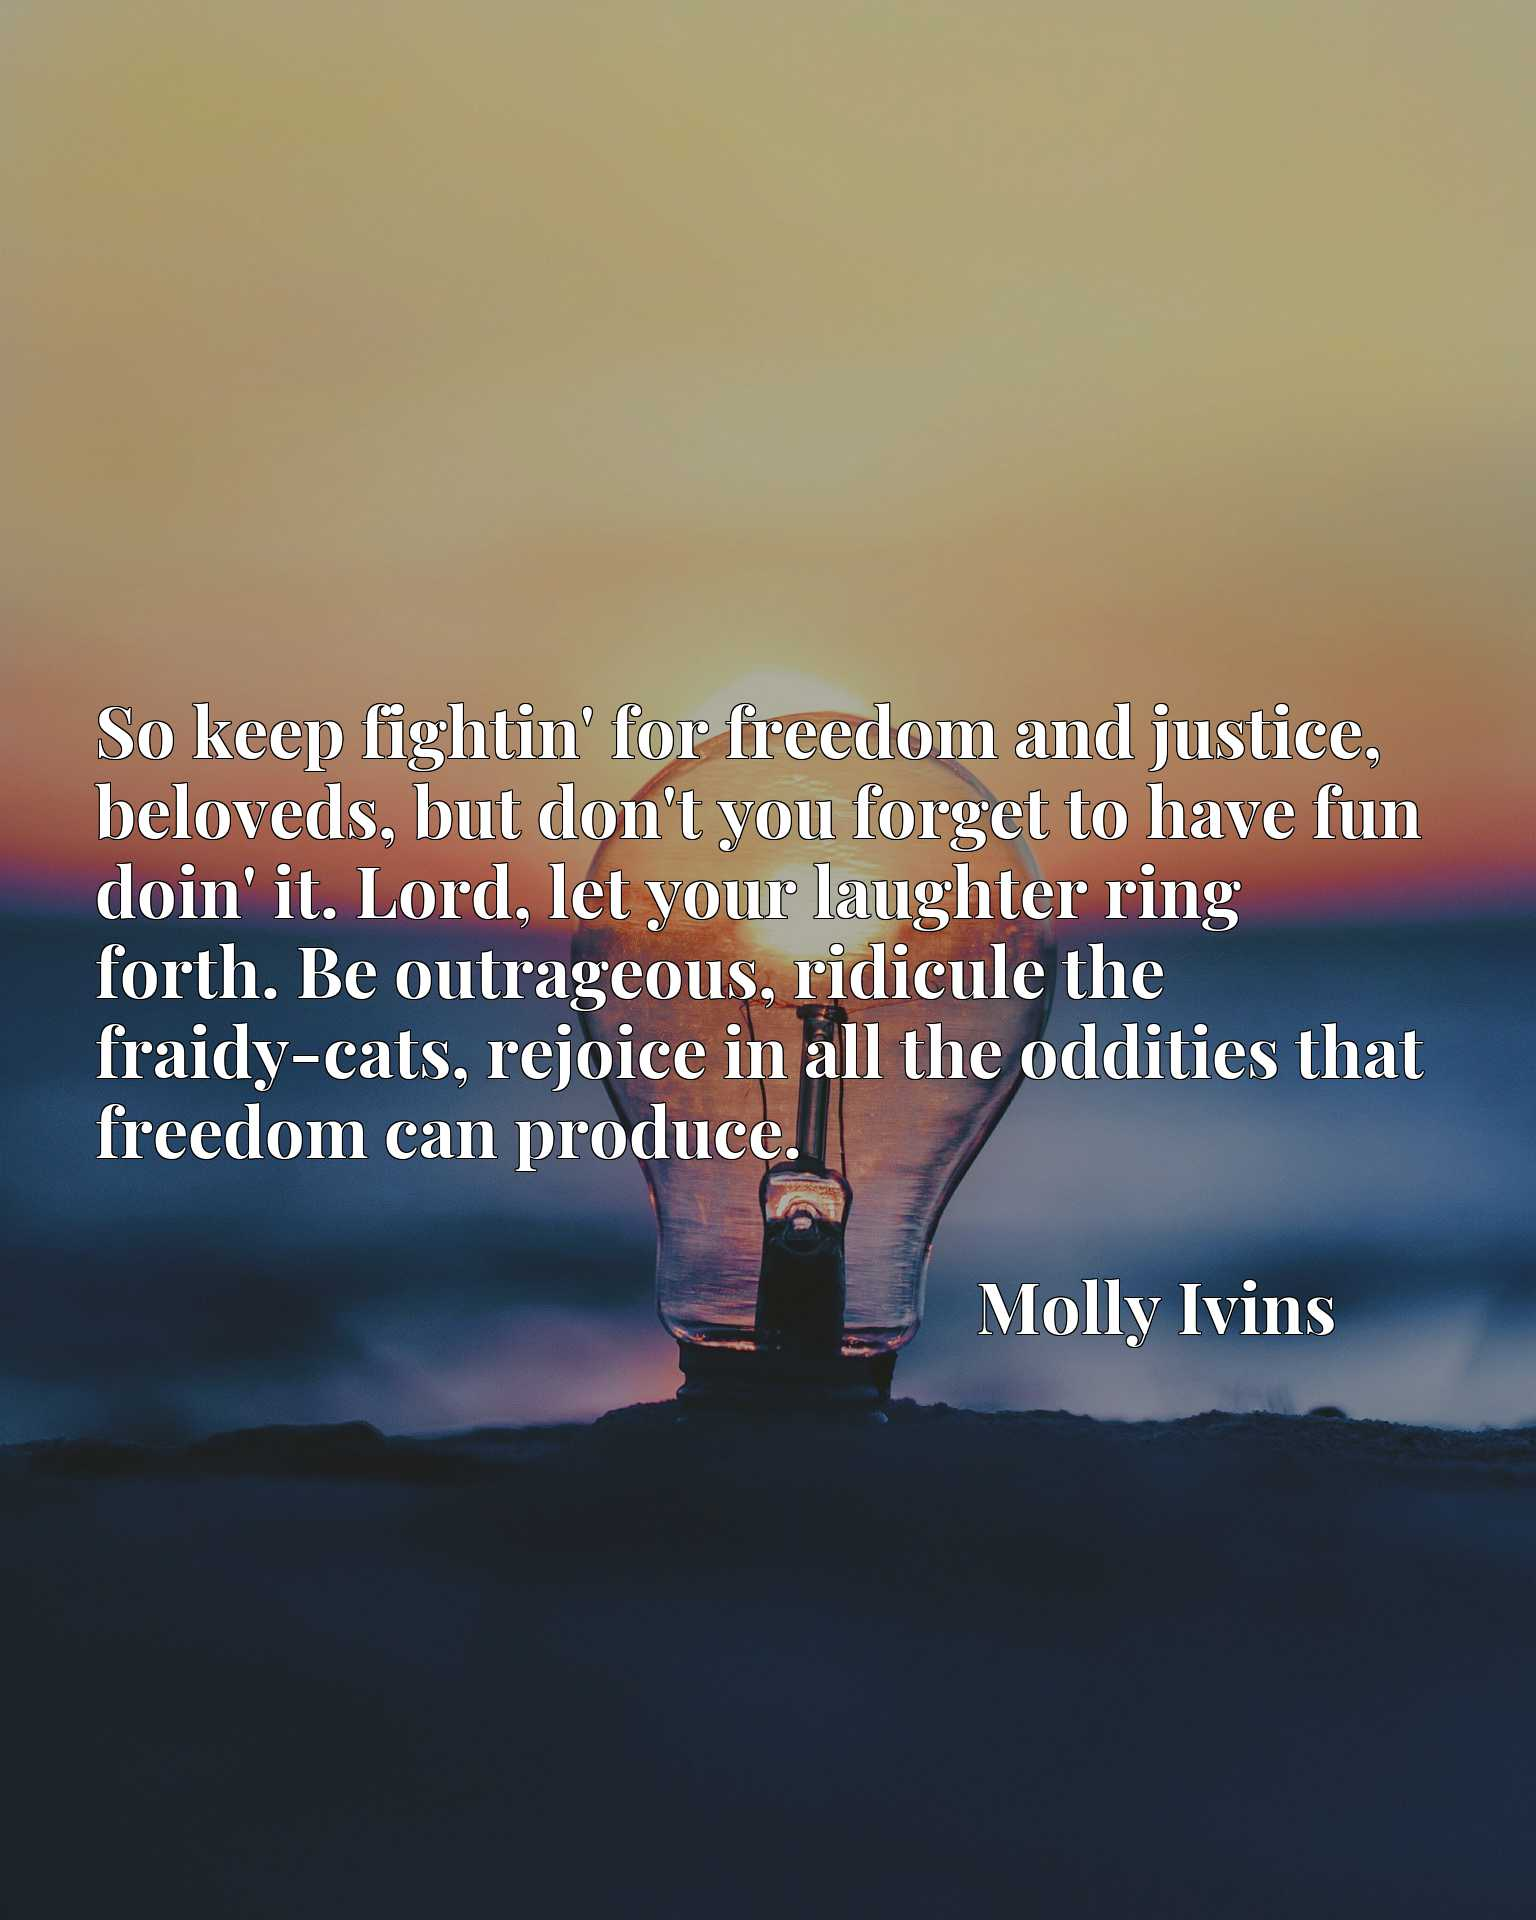 So keep fightin' for freedom and justice, beloveds, but don't you forget to have fun doin' it. Lord, let your laughter ring forth. Be outrageous, ridicule the fraidy-cats, rejoice in all the oddities that freedom can produce.